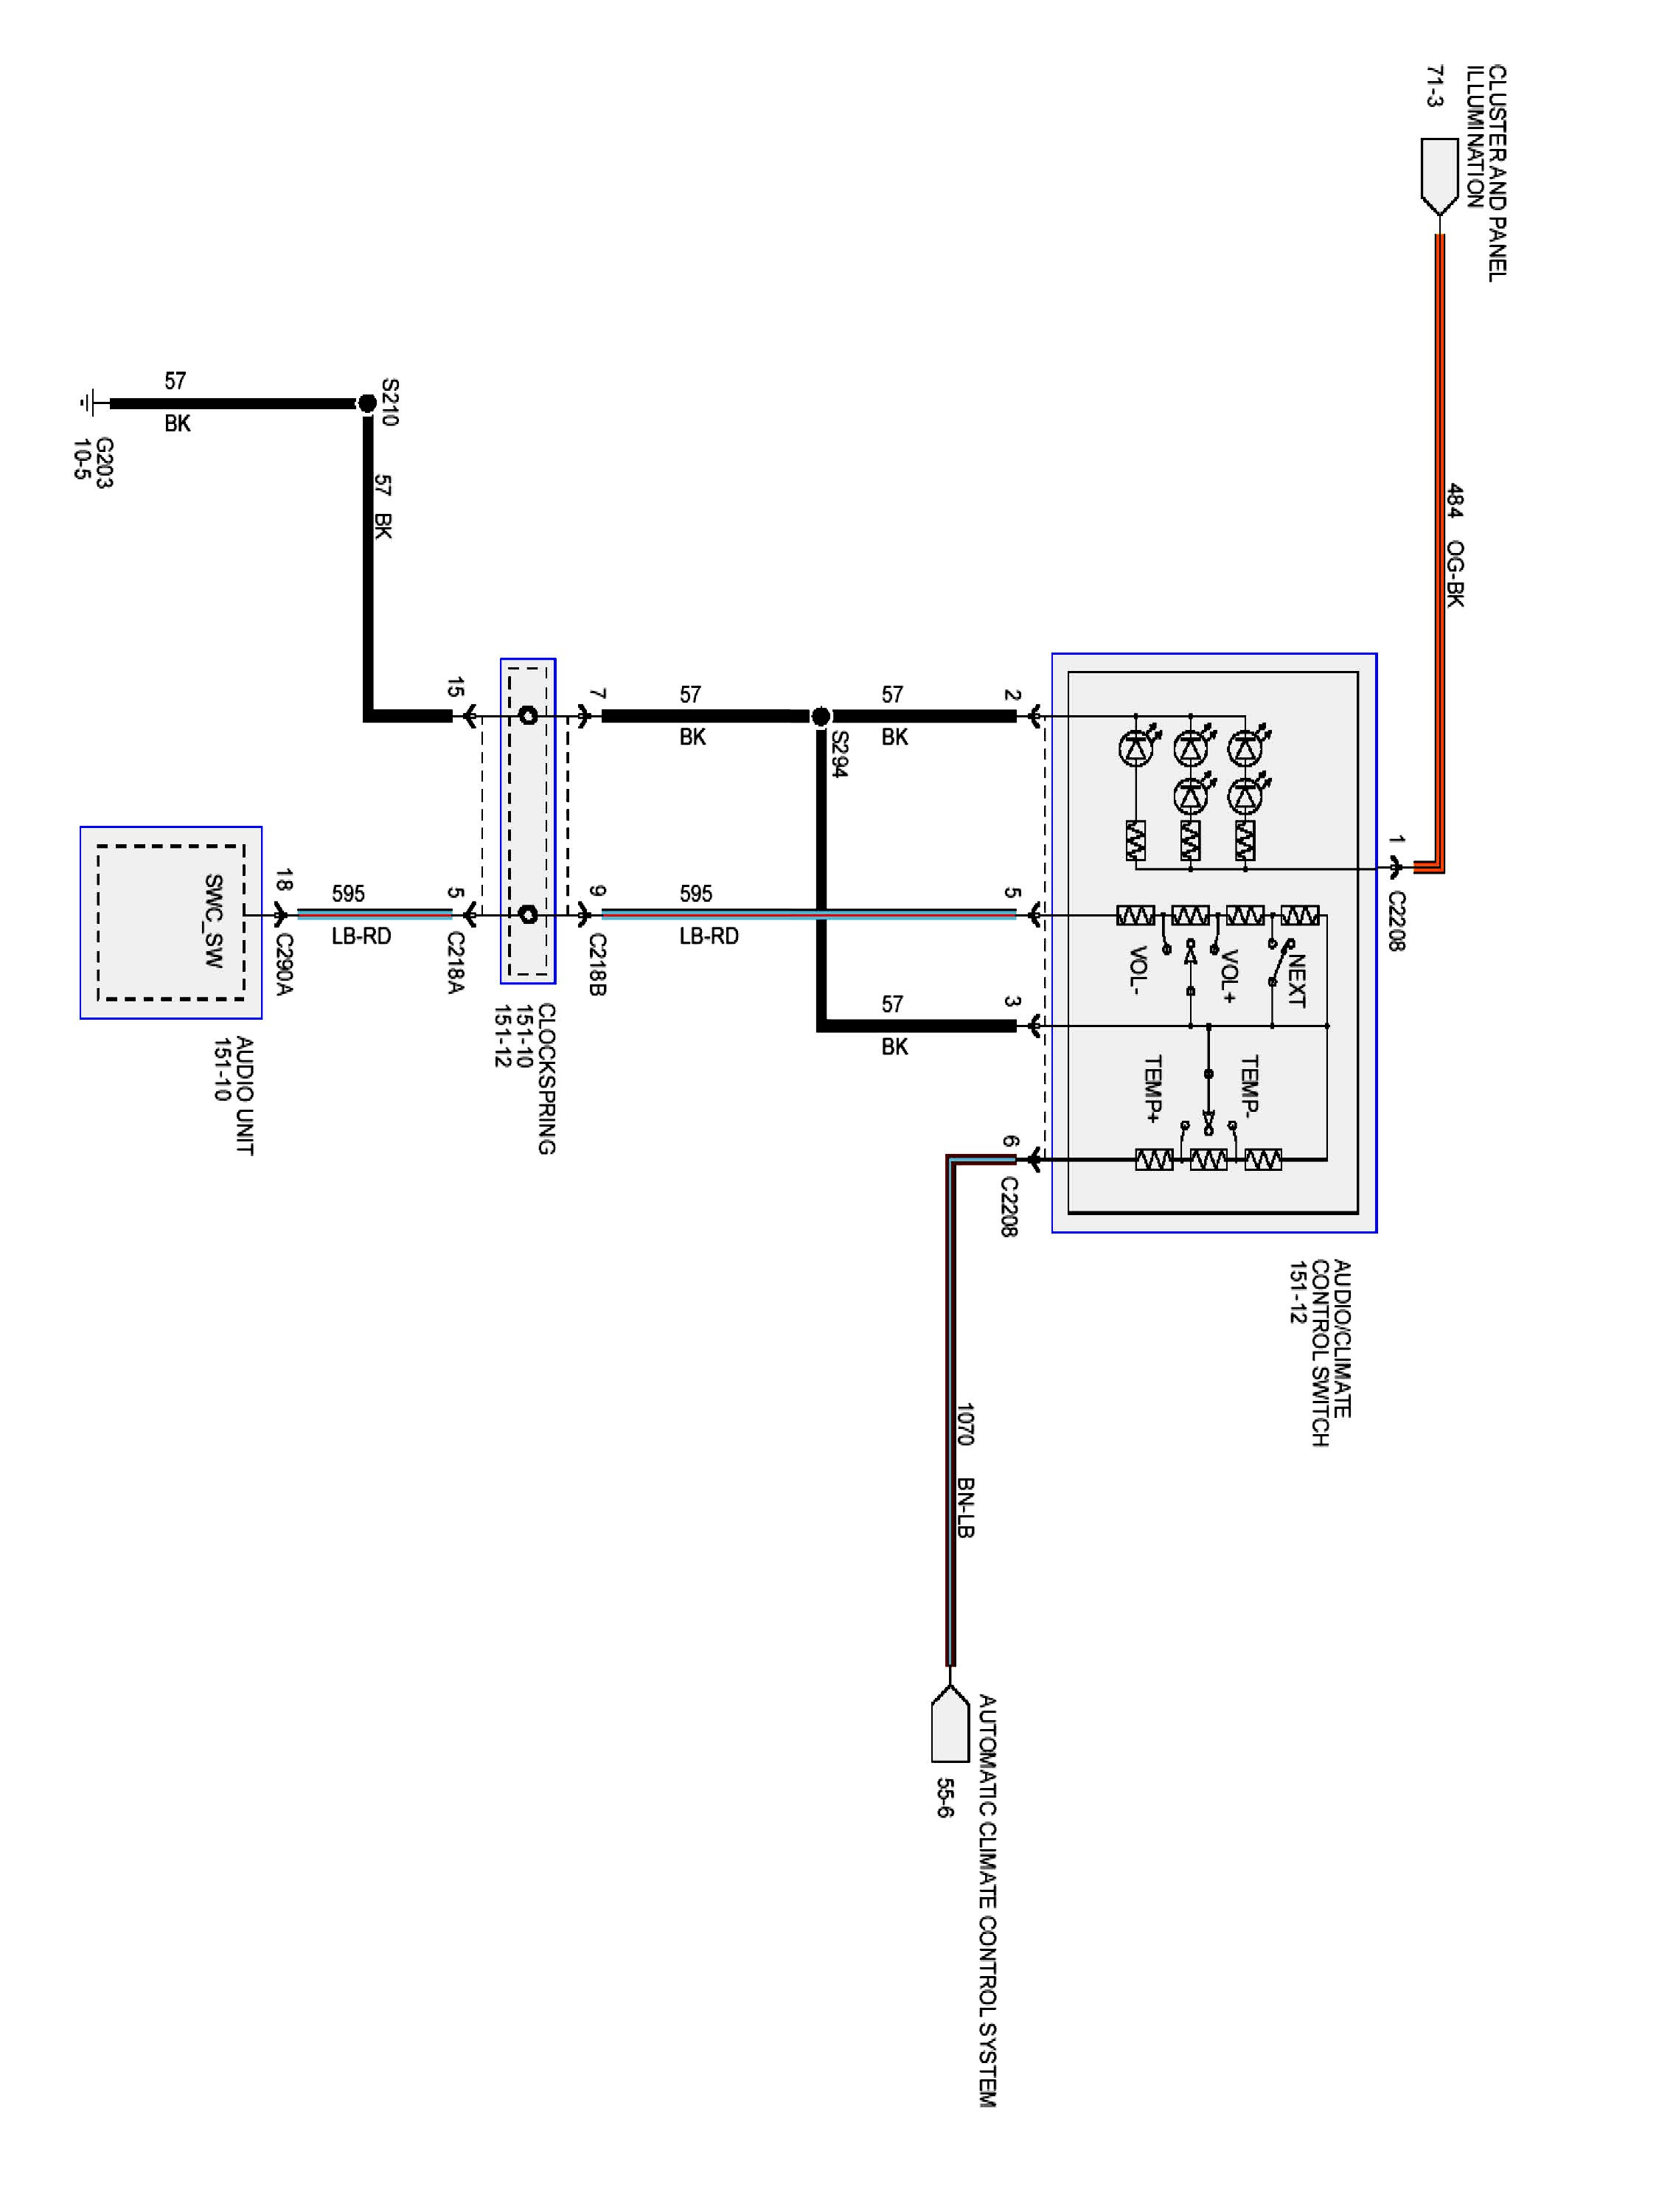 Diagram 91 Lincoln Town Car Stereo Wiring Diagram Full Version Hd Quality Wiring Diagram Itdiagram Cscervino It